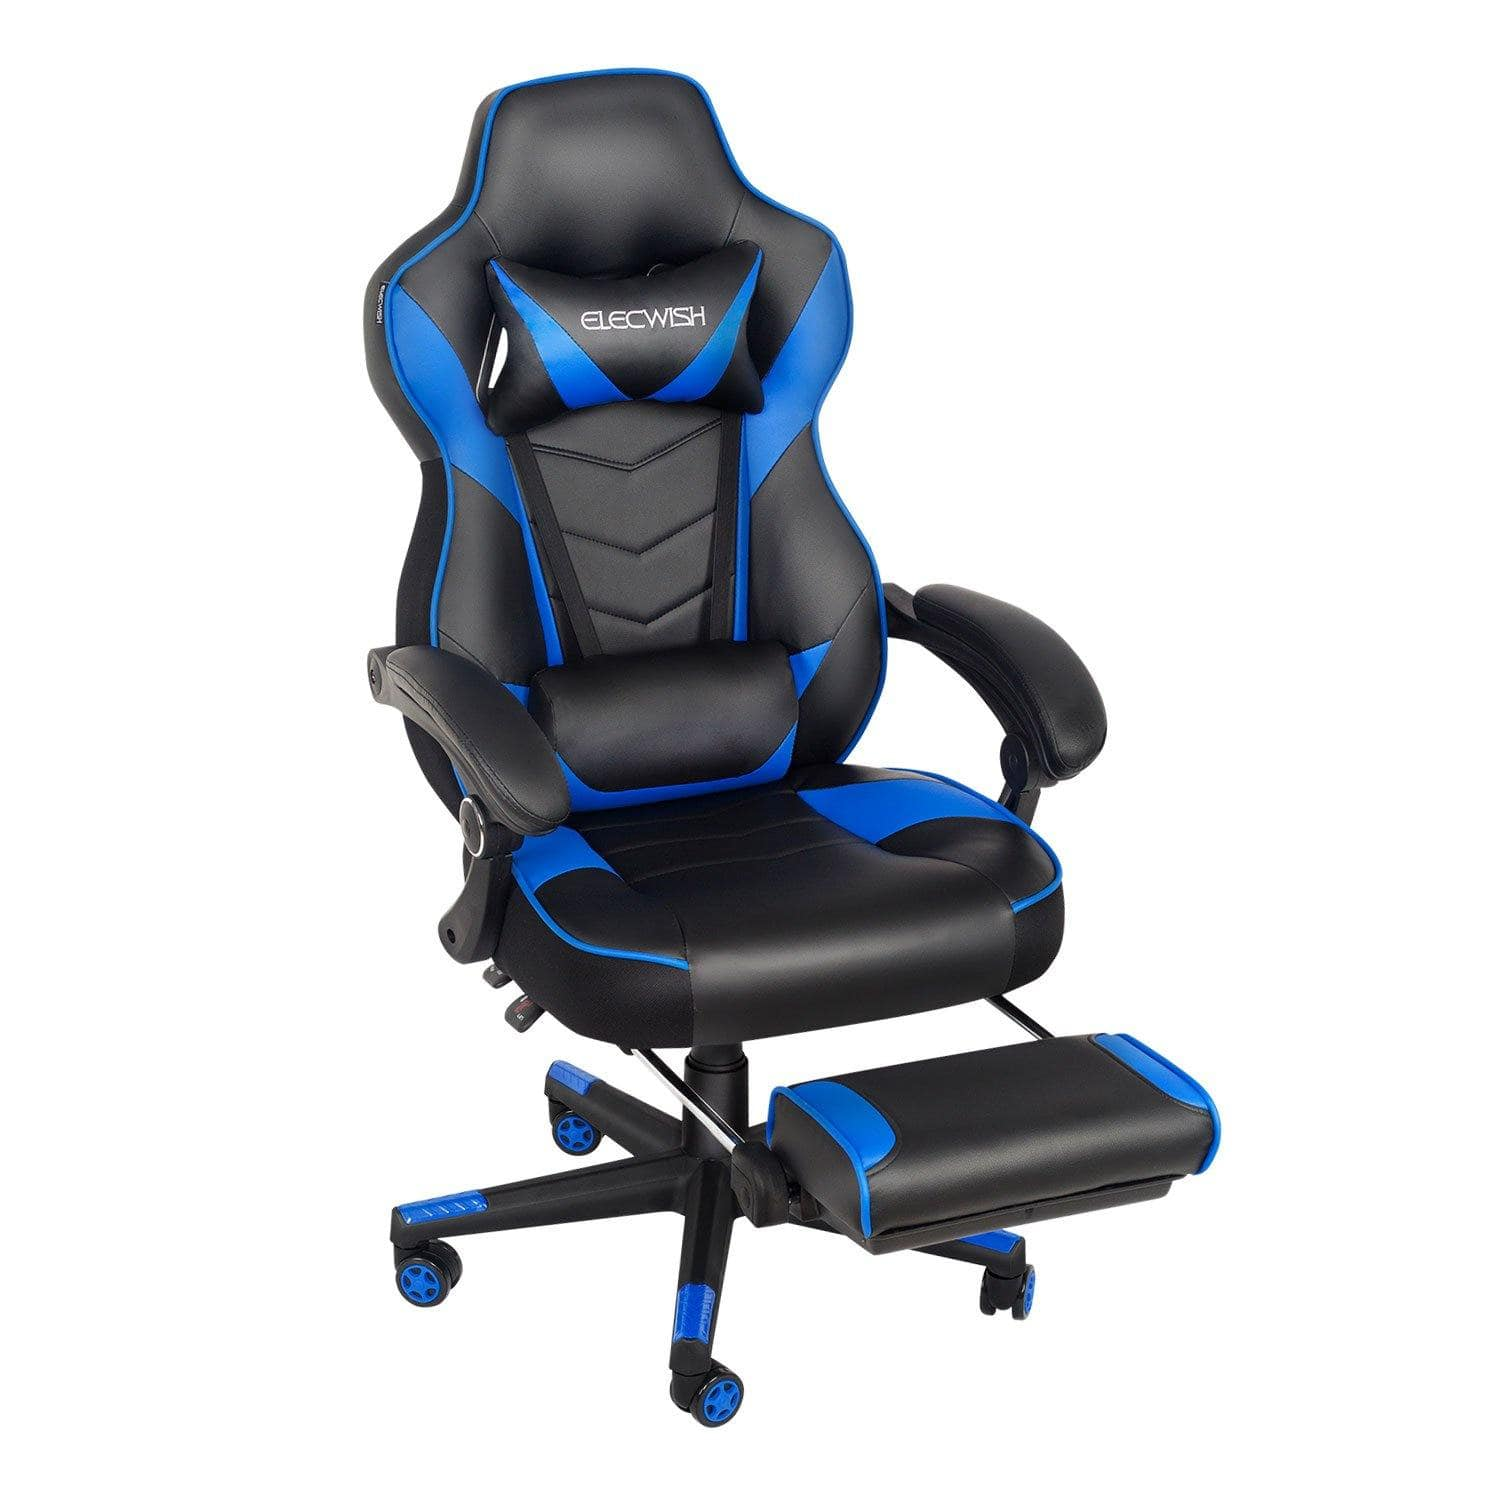 ELECWISH Video Gaming Chair